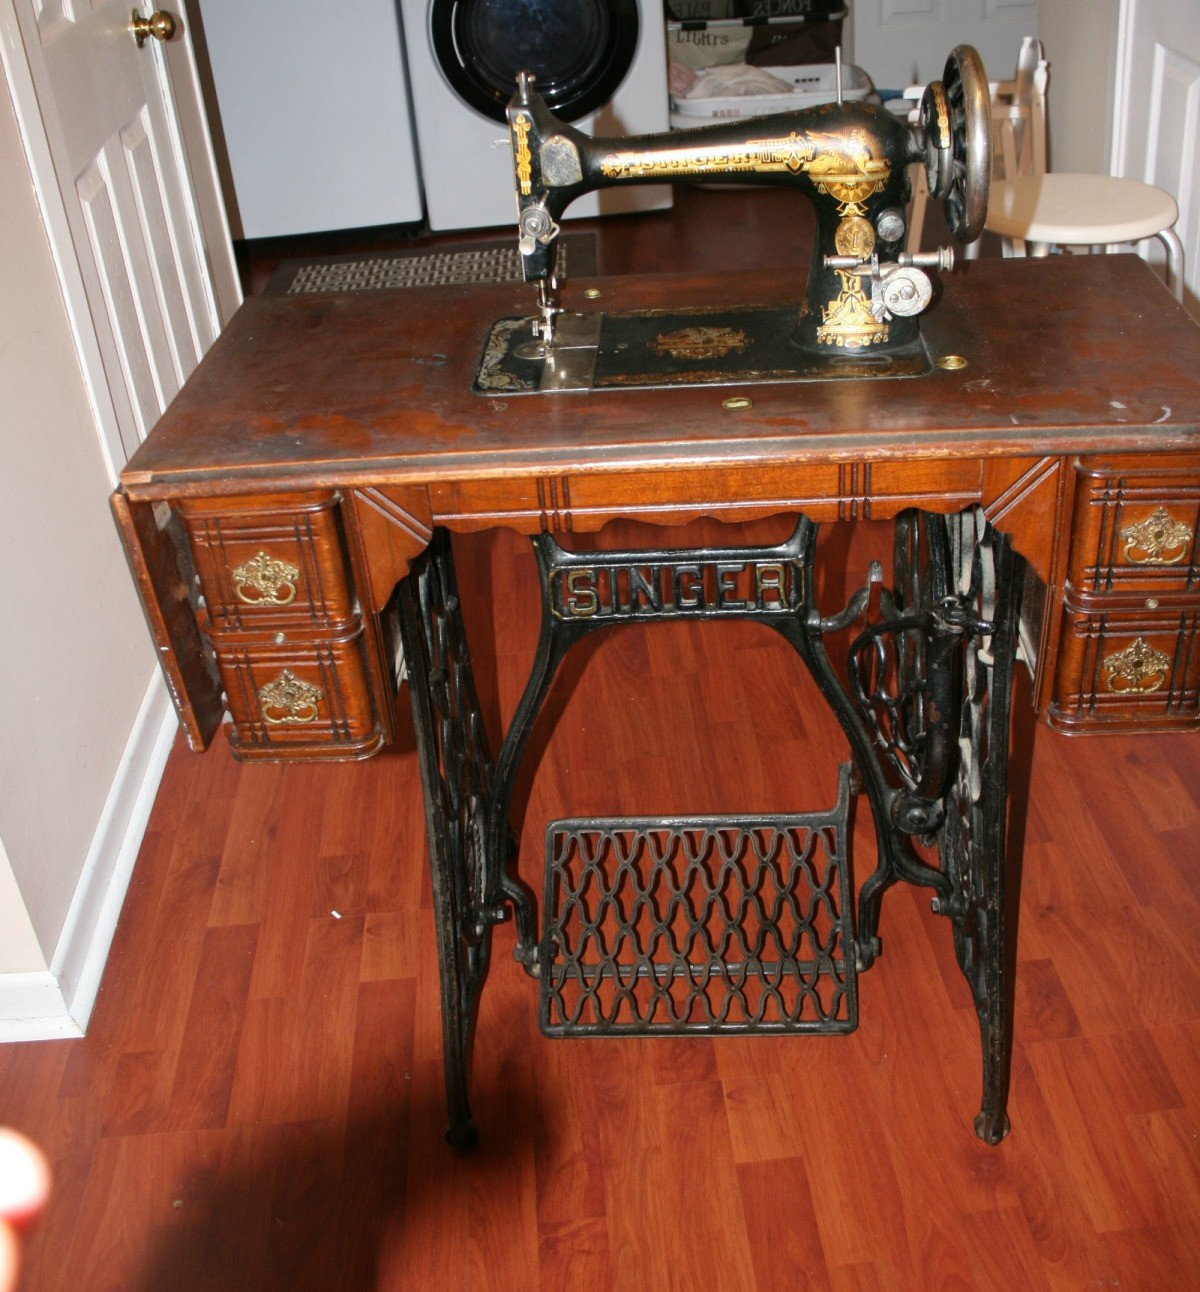 Value of an Antique Singer Sewing Machine | ThriftyFun